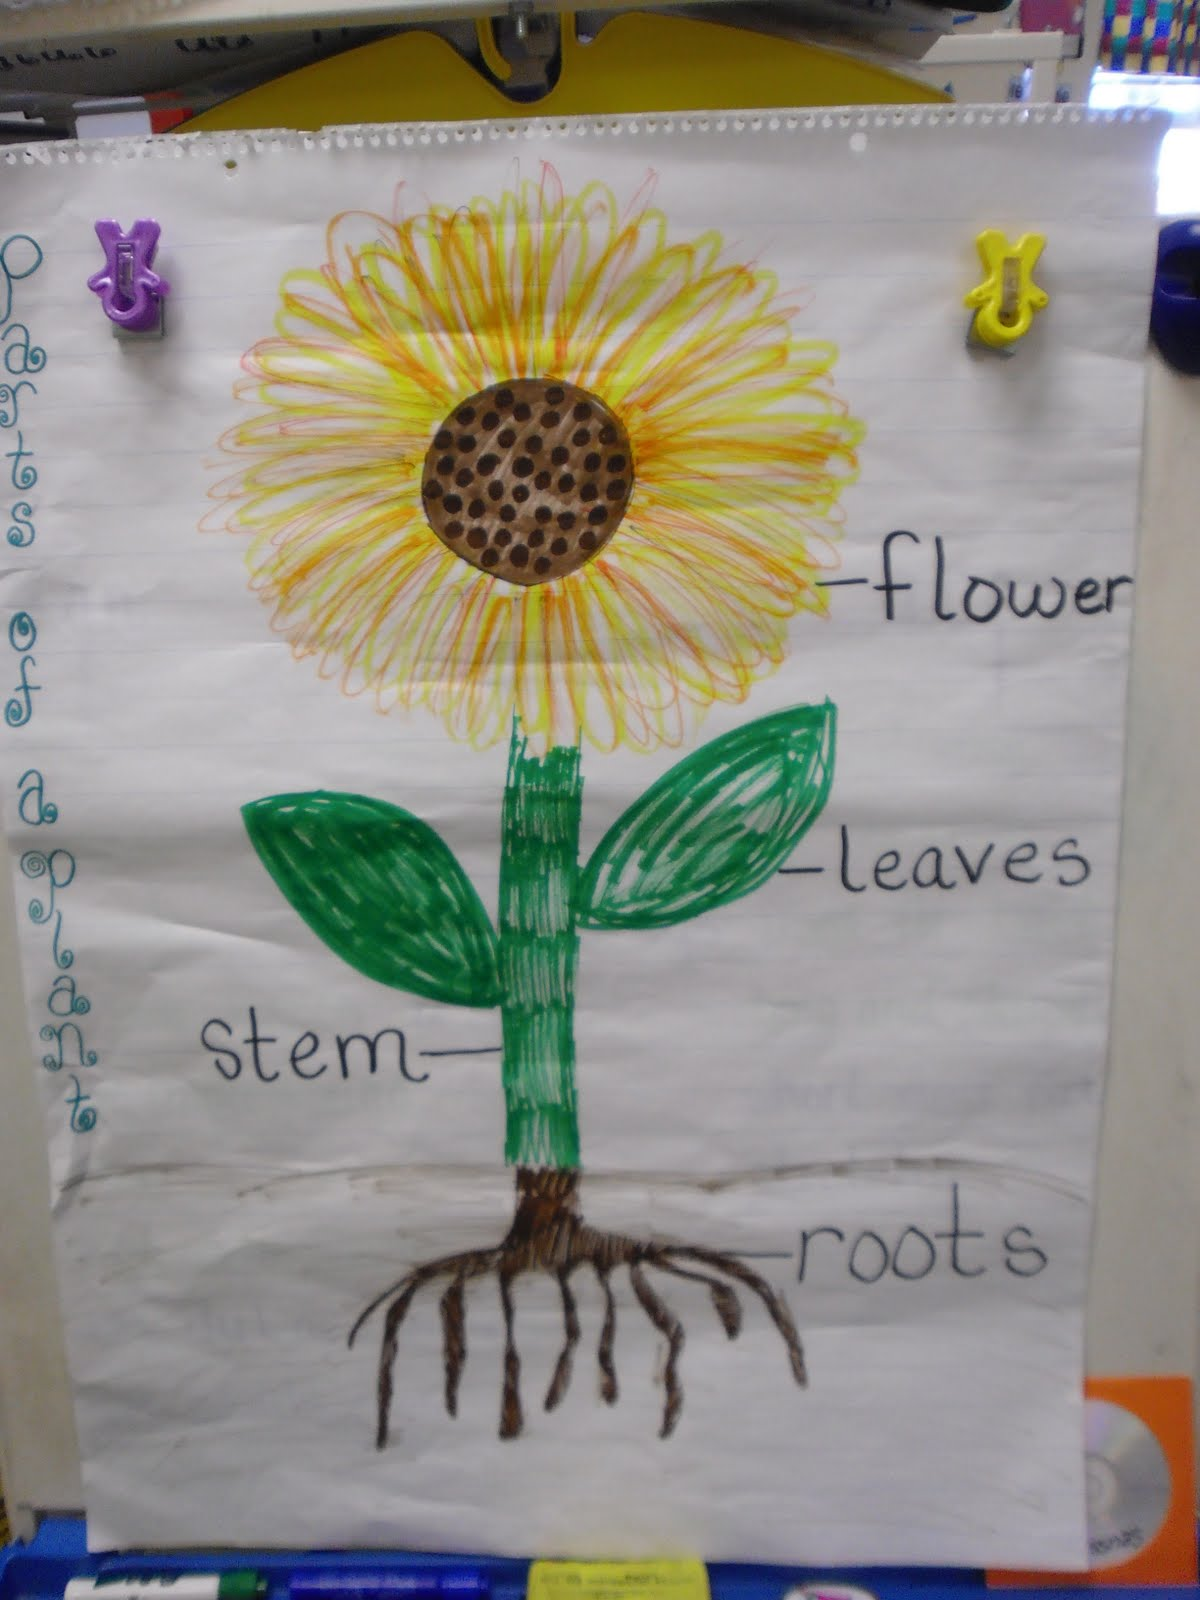 Littlecats Kindergarten Plants Seeds And Wiggly Worms